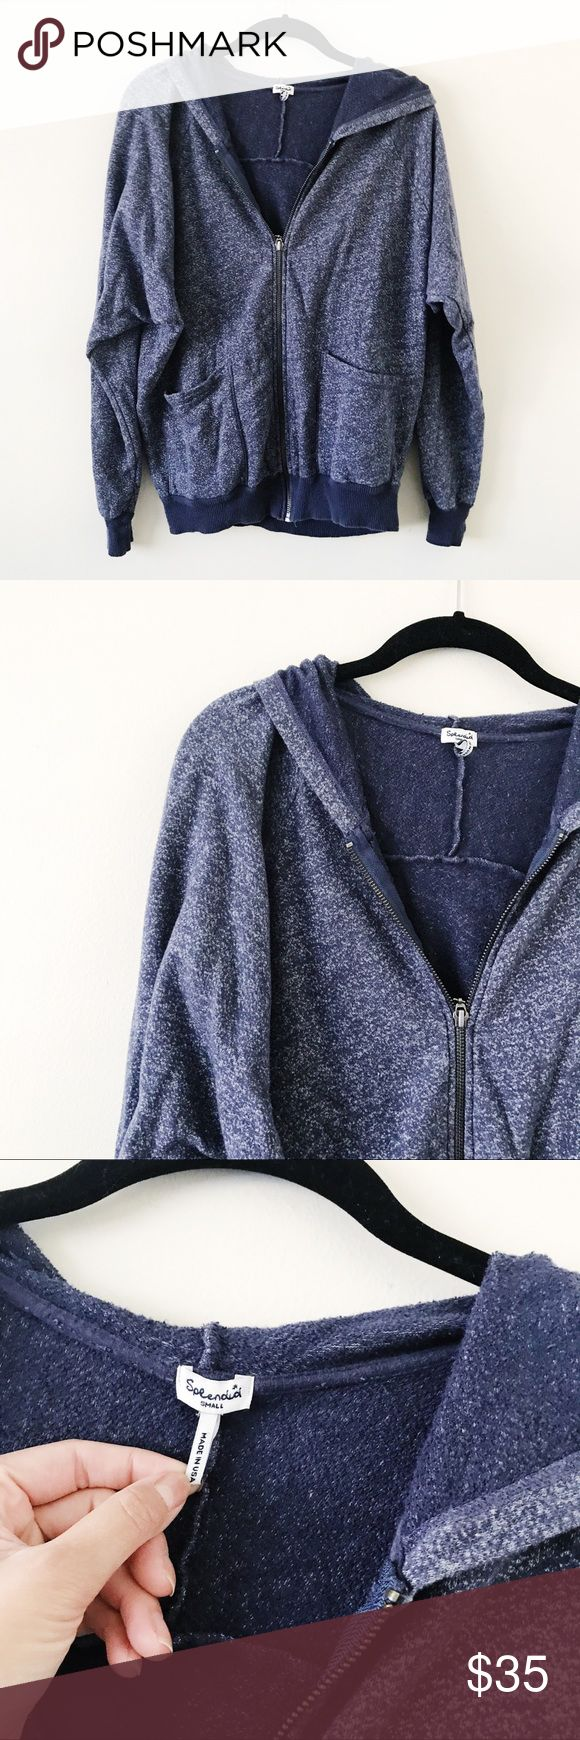 Splendid Heather Navy Zip Up Hoodie • brand: splendid  • condition: worn a few times, excellent  • size: small  • description: very cozy hoodie, zip up, heather navy color   • trying to downsize my closet. bundle to save 💰 no trades or holds. i ship within 24-48 hours. happy shopping! Splendid Tops Sweatshirts & Hoodies